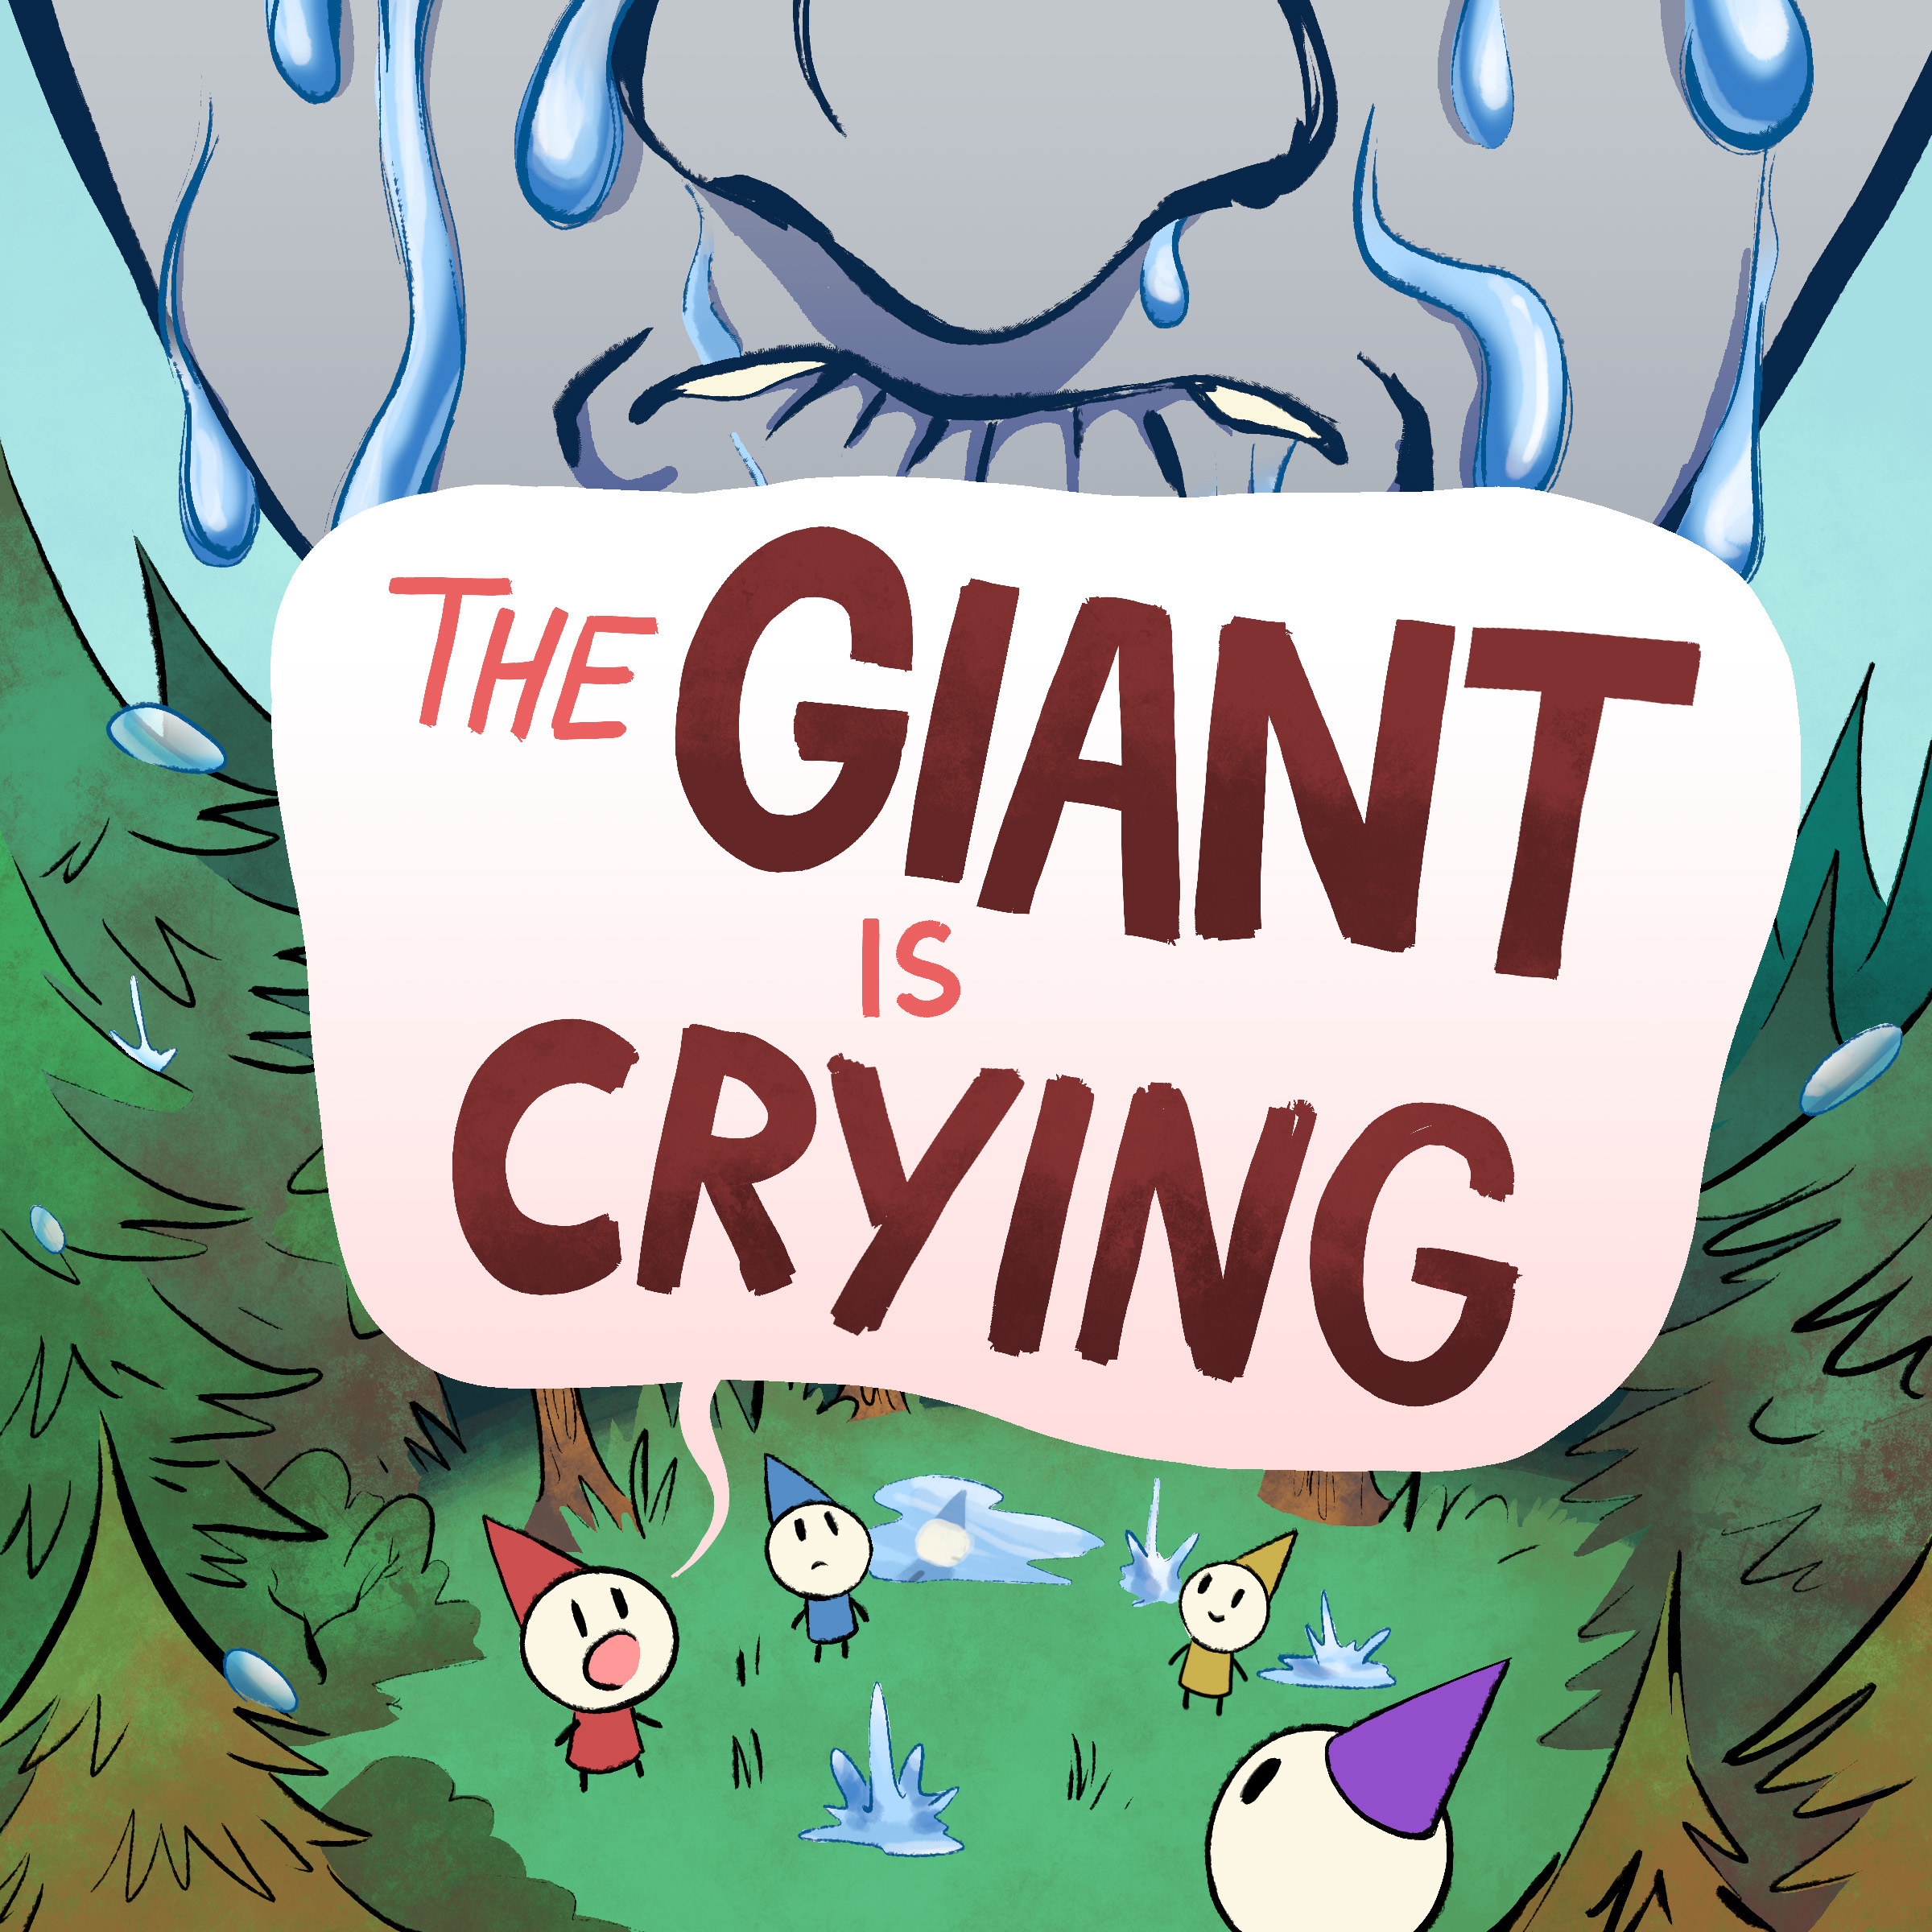 The Giant is Crying 000 Thumb.jpg